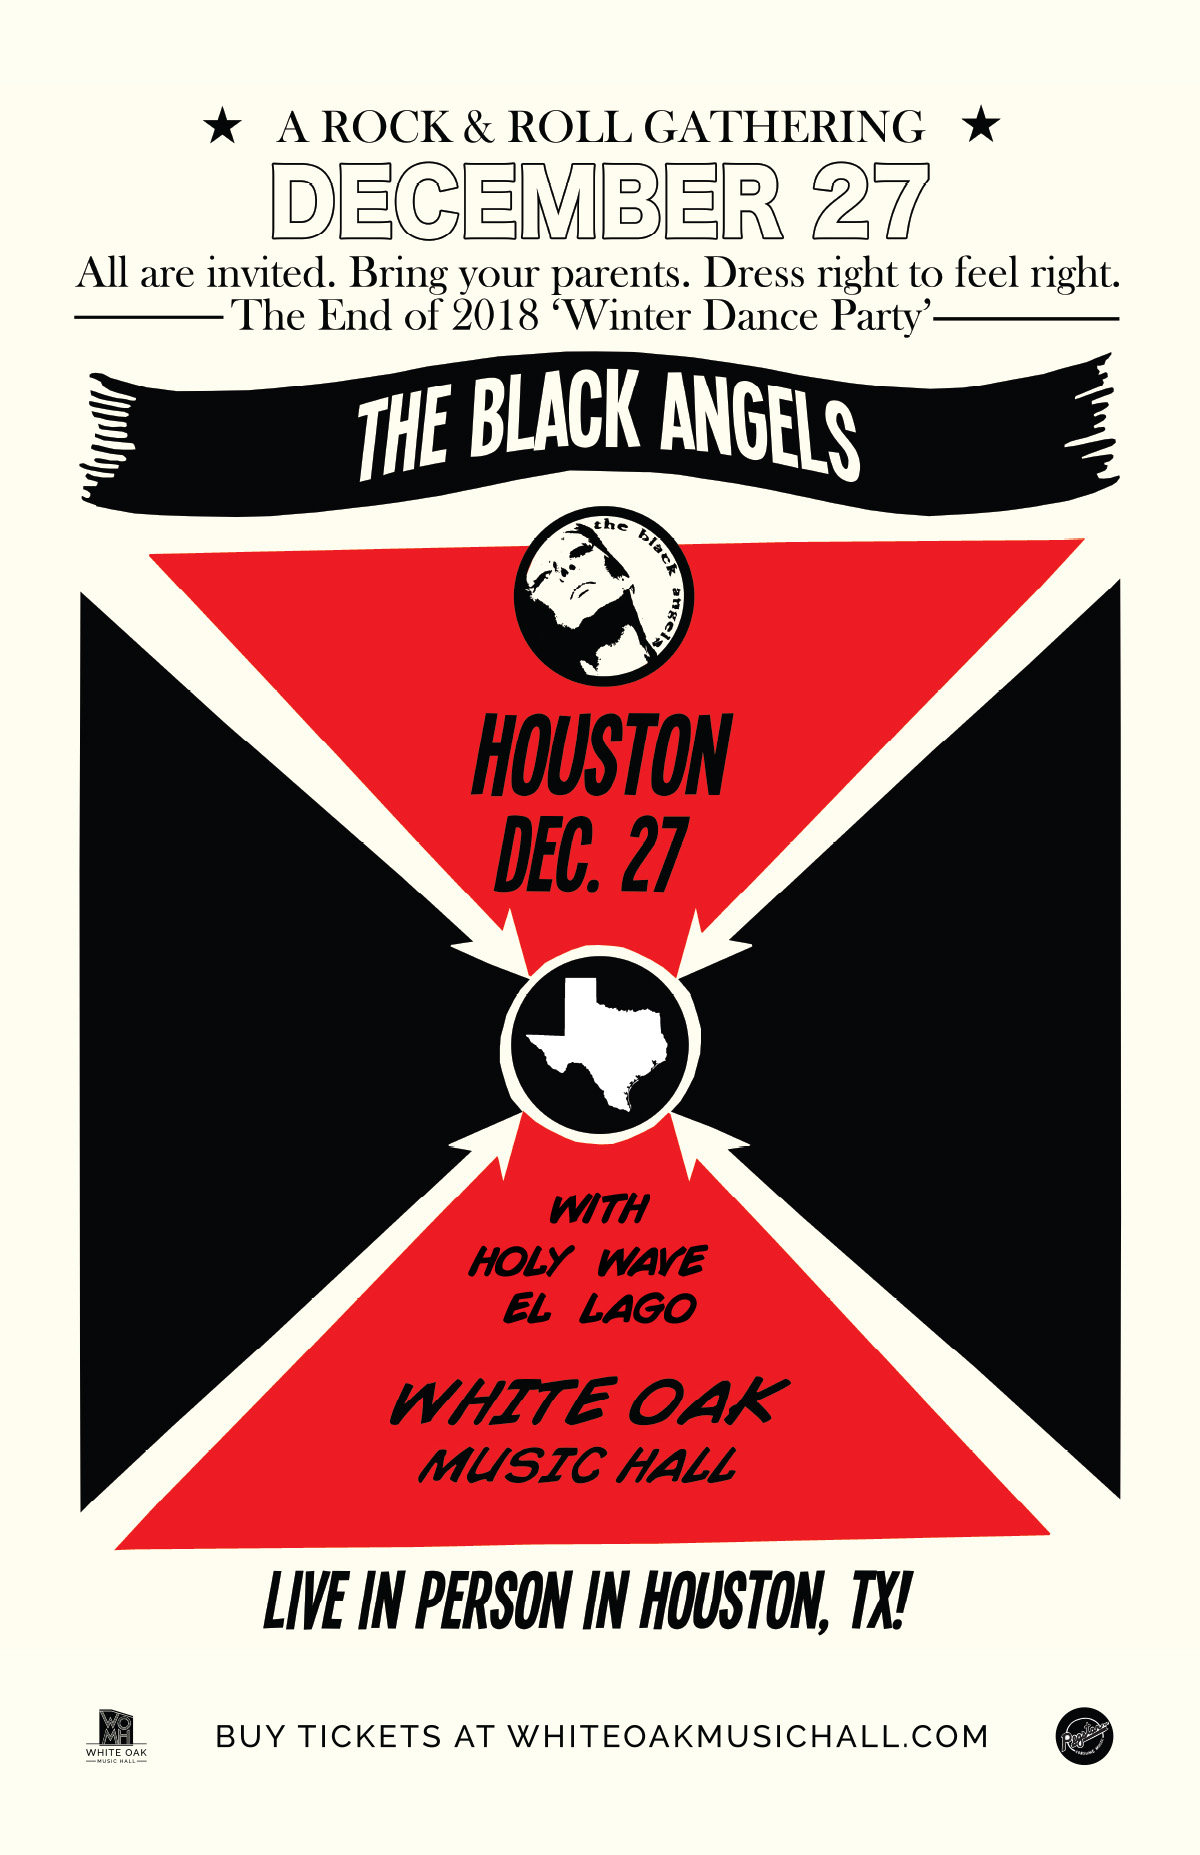 The Black Angels' Rock & Roll Gathering at White Oak Music Hall